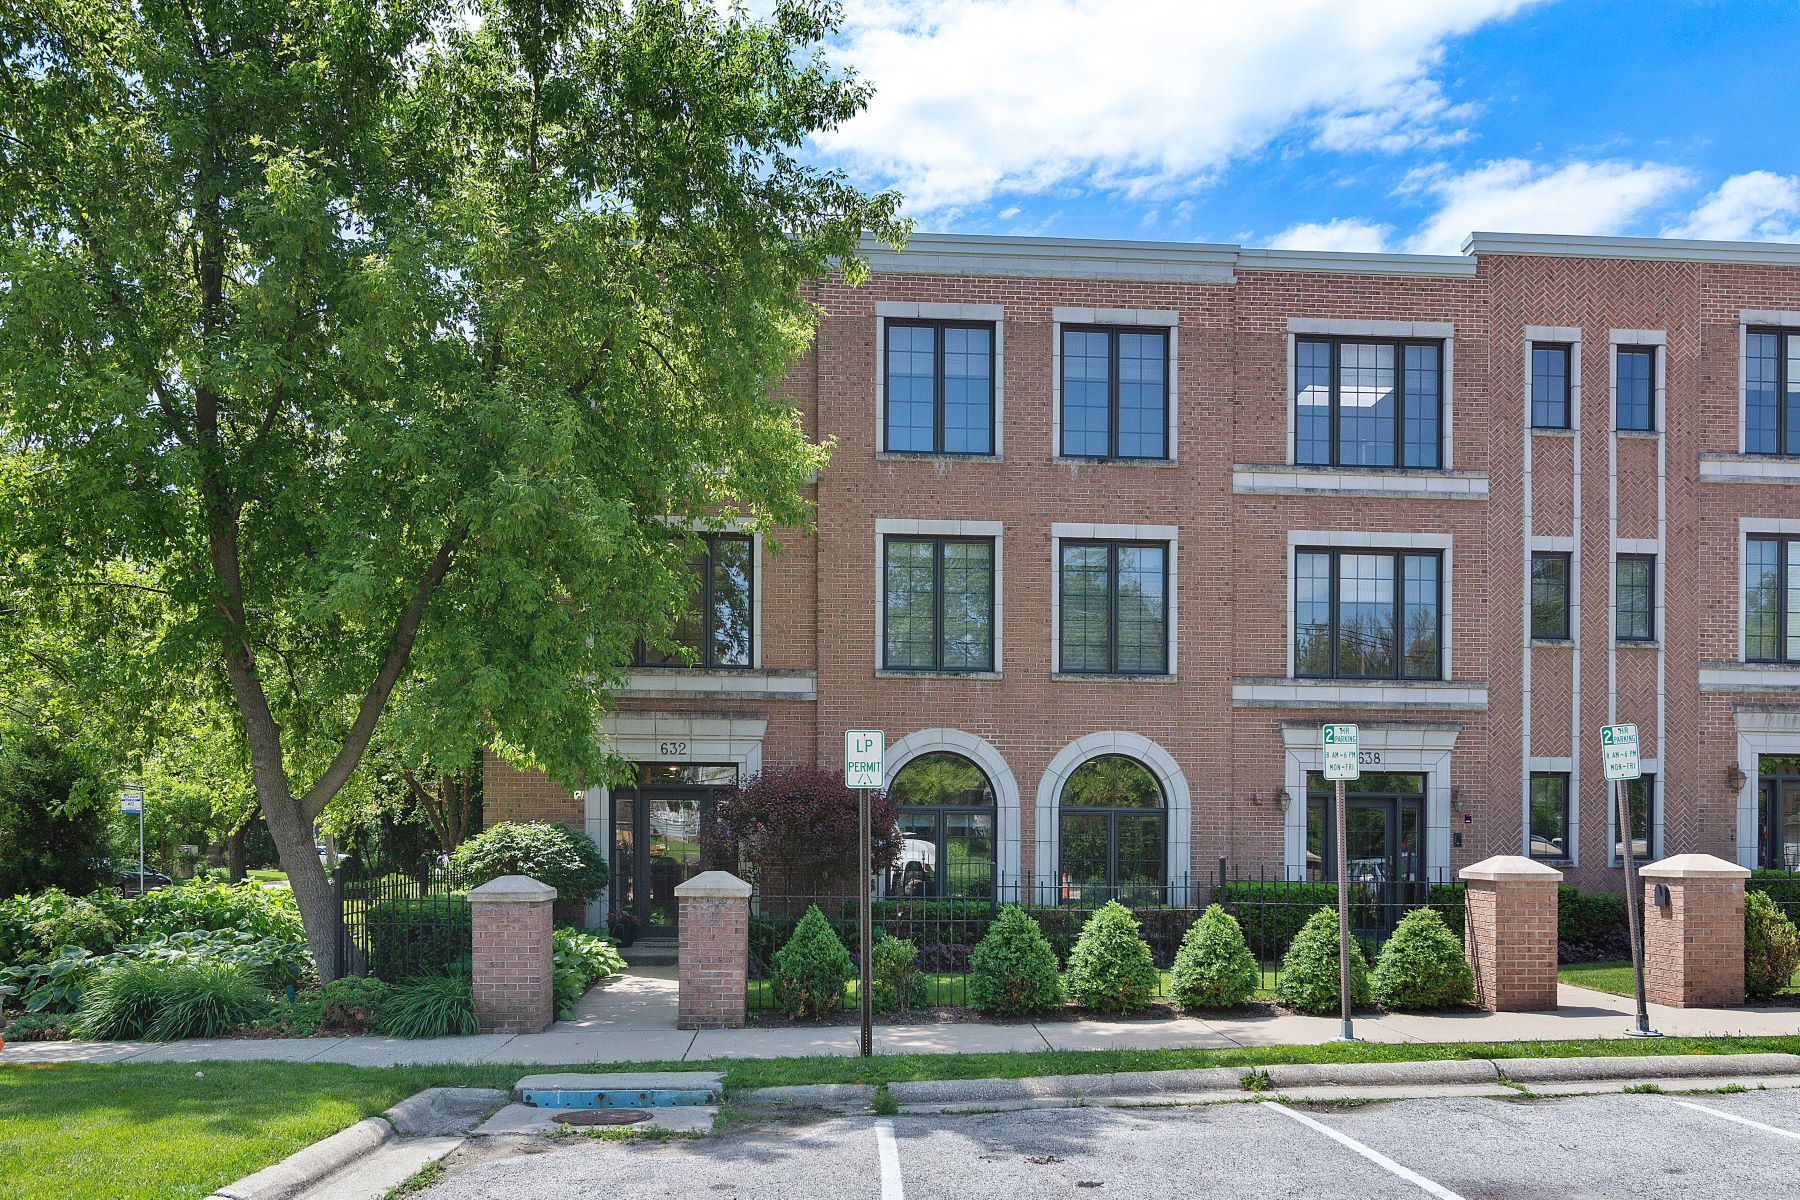 Single Family Homes for Active at Custom Built Townhome 632 La Salle Place Unit D Highland Park, Illinois 60035 United States